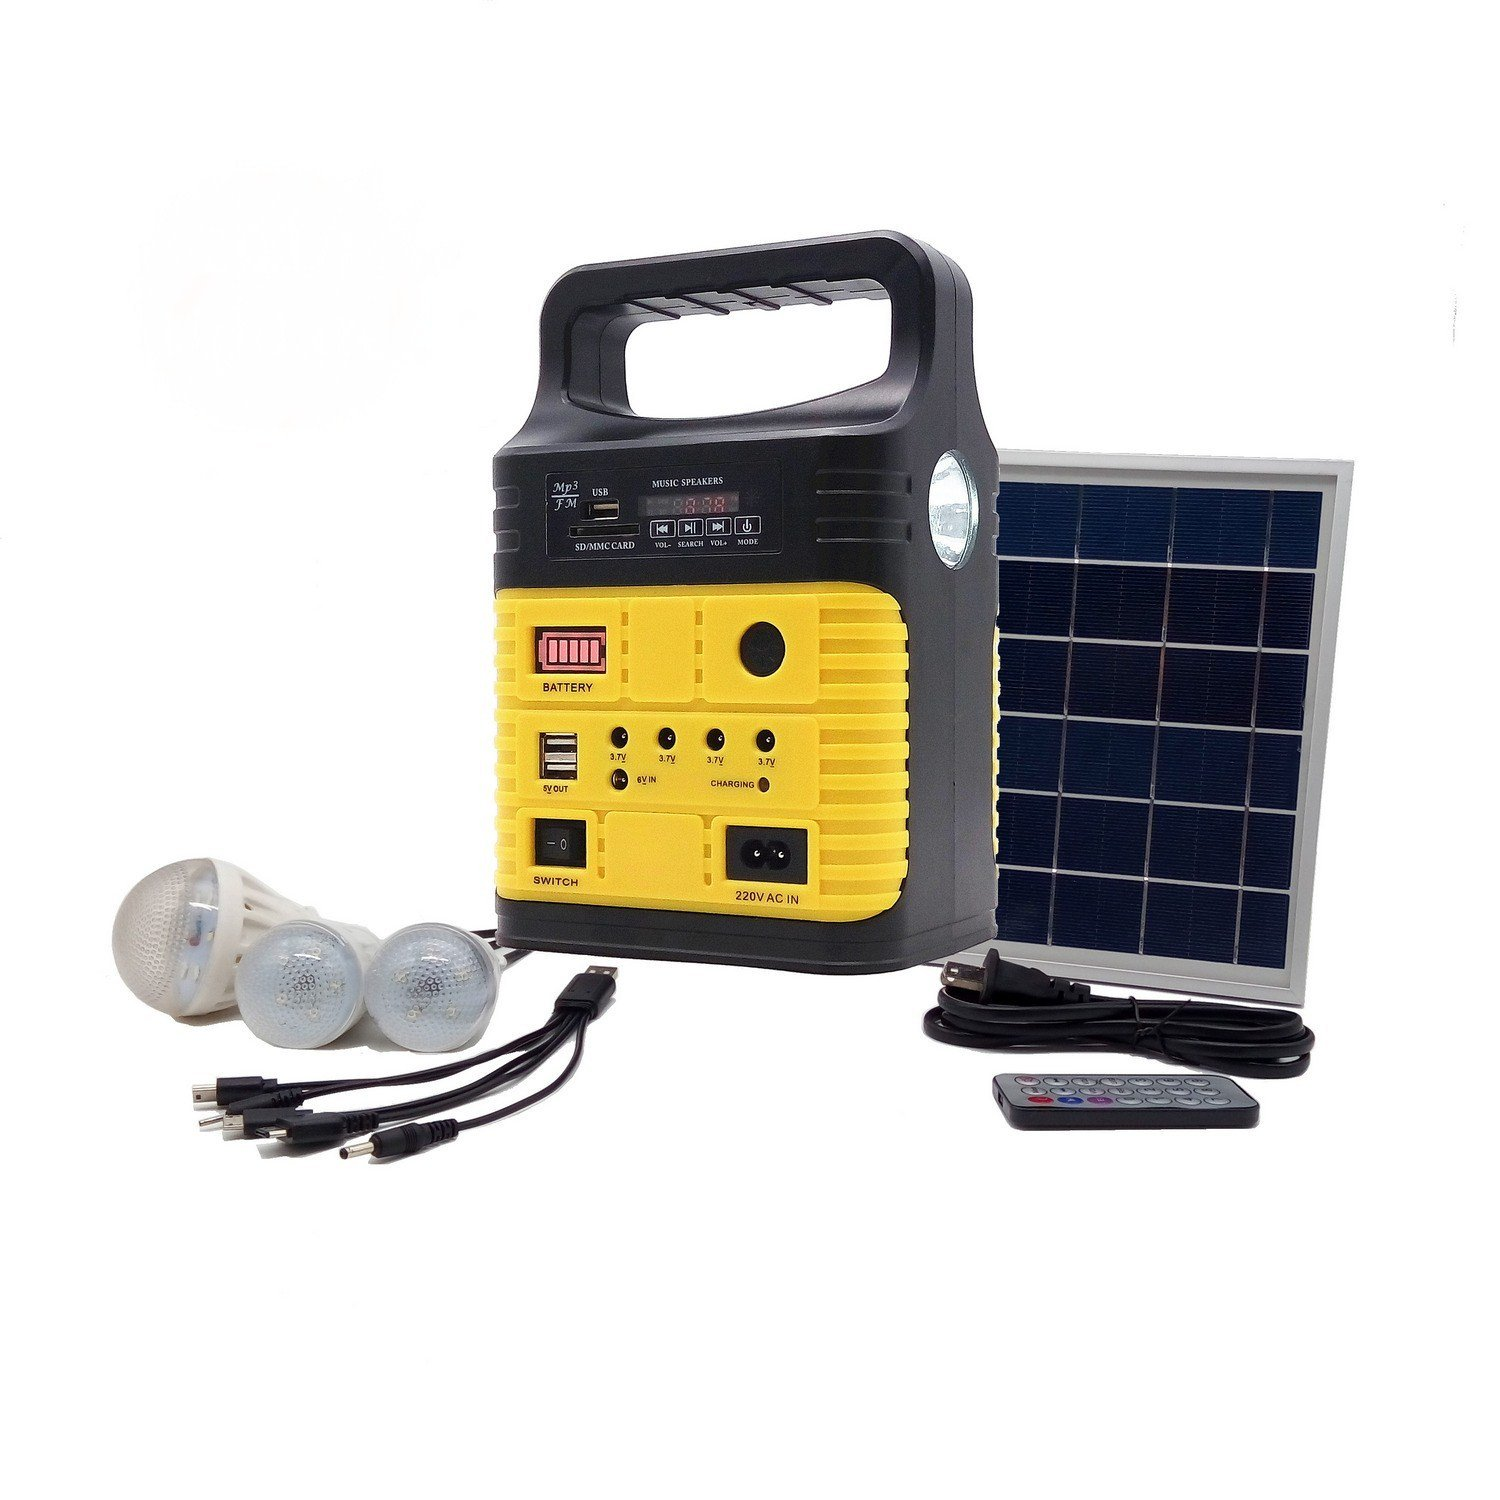 Portable Solar Generator with Solar Panel,Included 3 Sets LED lights,Solar Power Inverter,Electric Generator,Small Basic Portable Generator Kit,Solar Lights for Home & Camping,Power for Solar Fans by Wegner